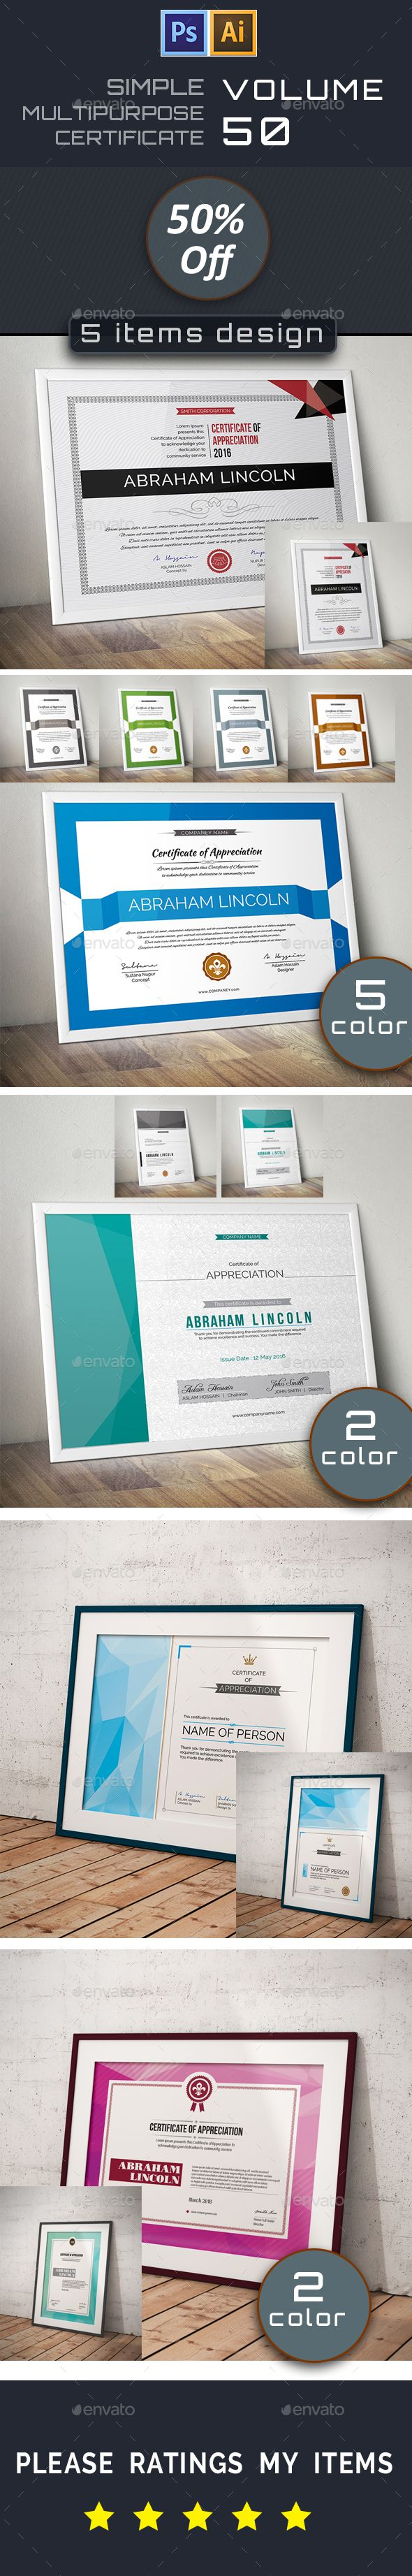 31 best psd templates certificate design images on pinterest simple certificate bundle 50 yadclub Image collections